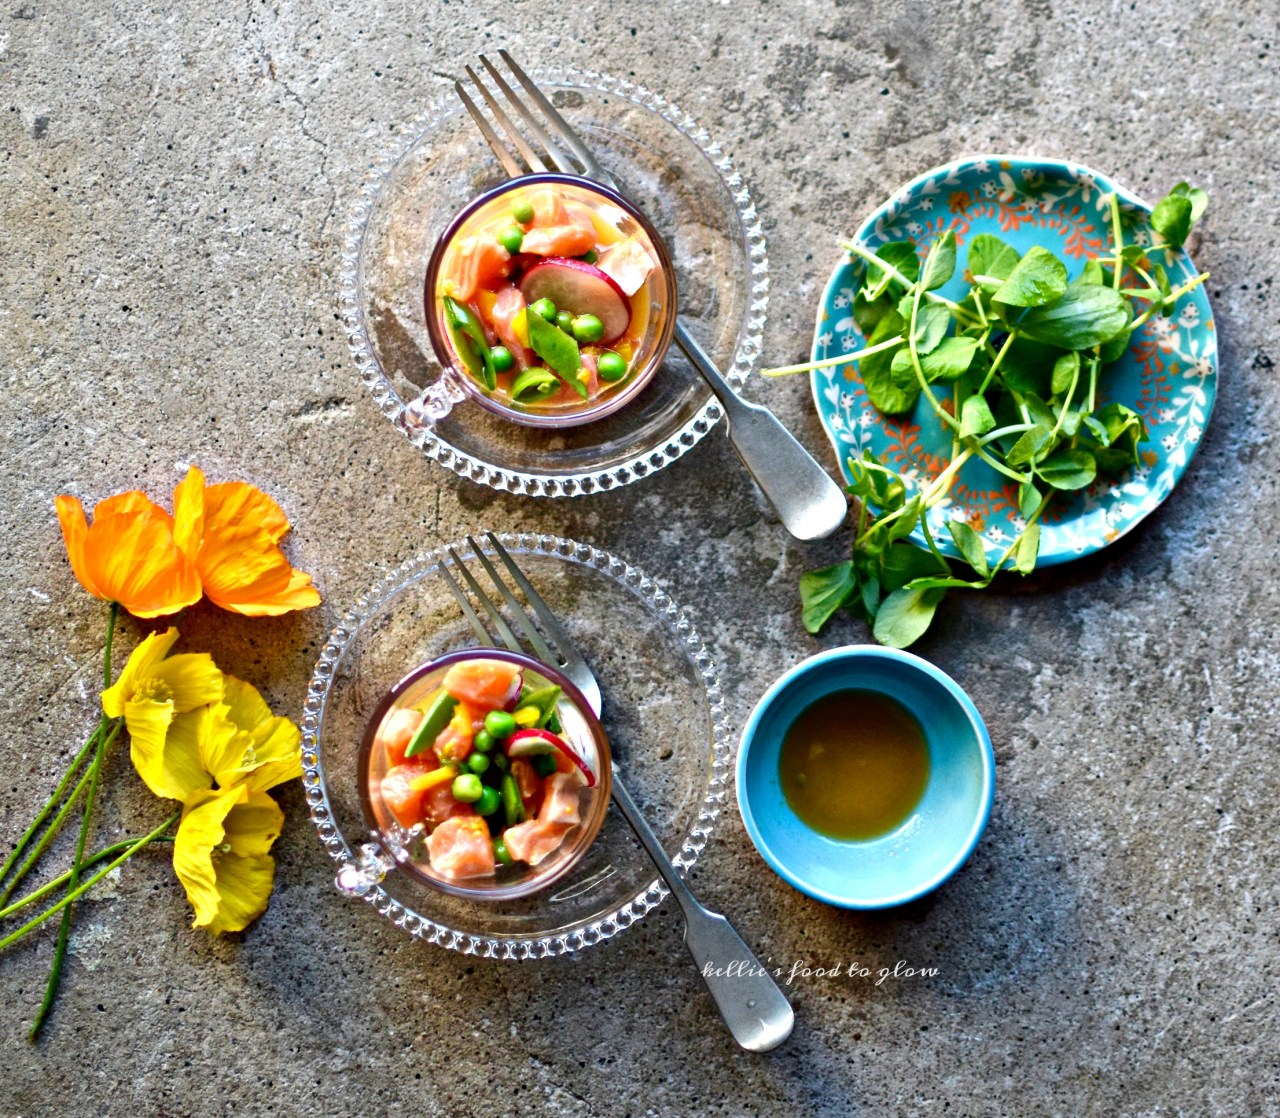 Light, bright and easy, ceviche is summer's quickest fancy food option. Cooked, yet not heated, ceviche saves you toiling away in a hot kitchen yet gives you the most glorious appetizer or lunch. And it's one of the easiest and prettiest dishes in the world to prepare. The yuzu tips it into must-make territory.